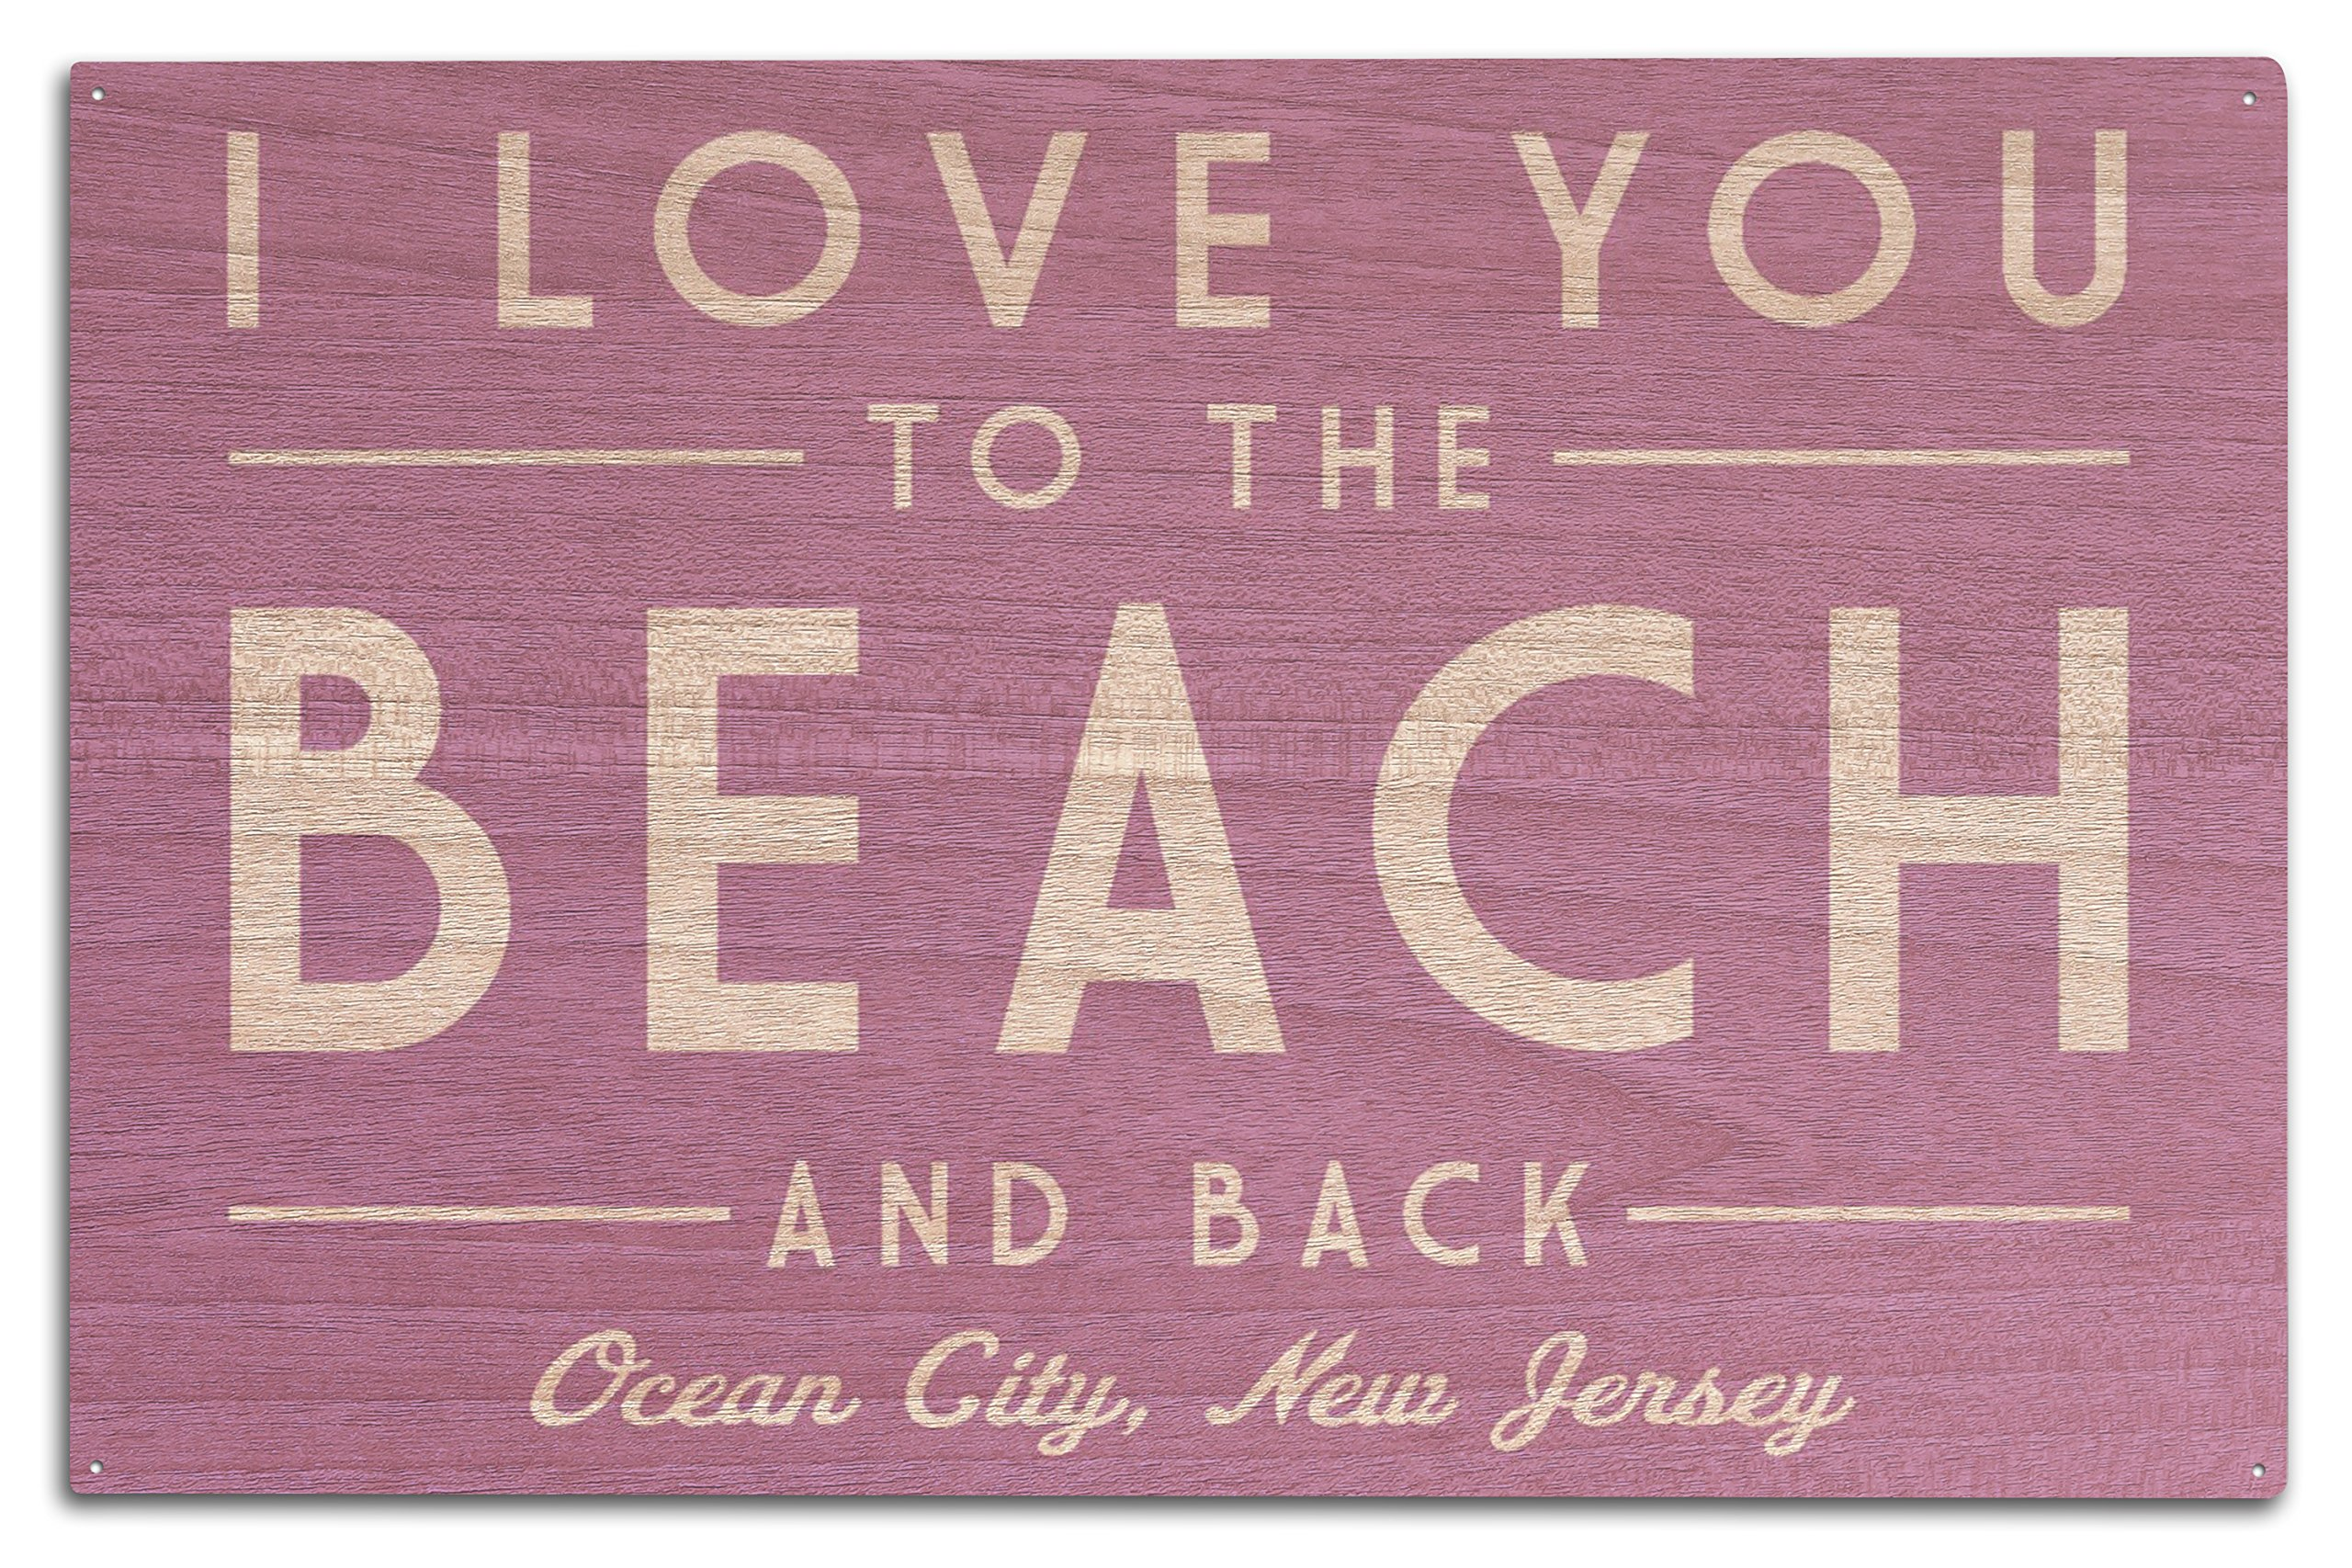 Ocean City, New Jersey - I Love You to the Beach and Back - Simply Said (10x15 Wood Wall Sign, Wall Decor Ready to Hang)